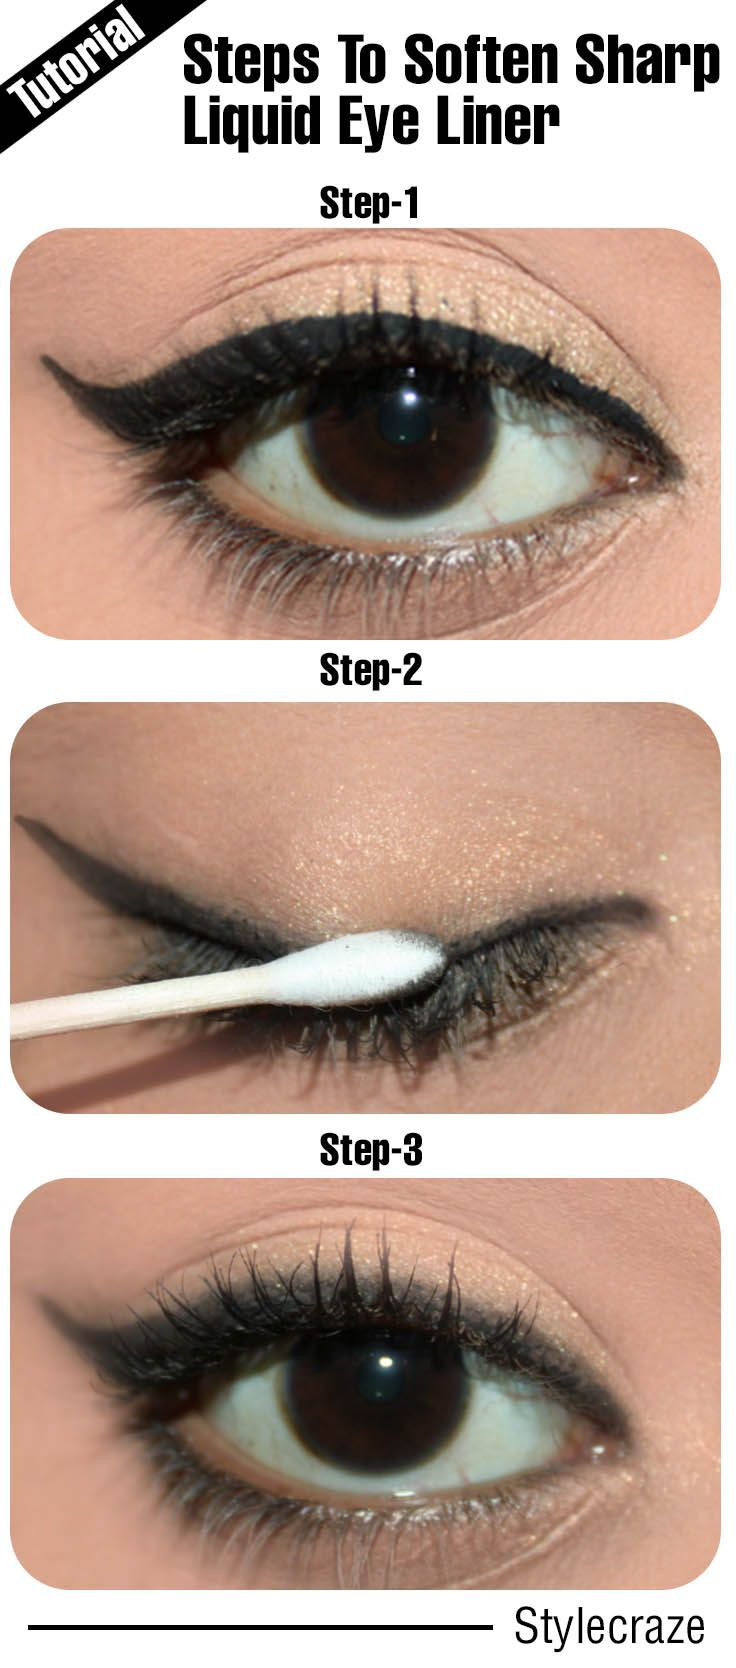 How To Apply Liquid Eyeliner: A Tutorial For Beginners